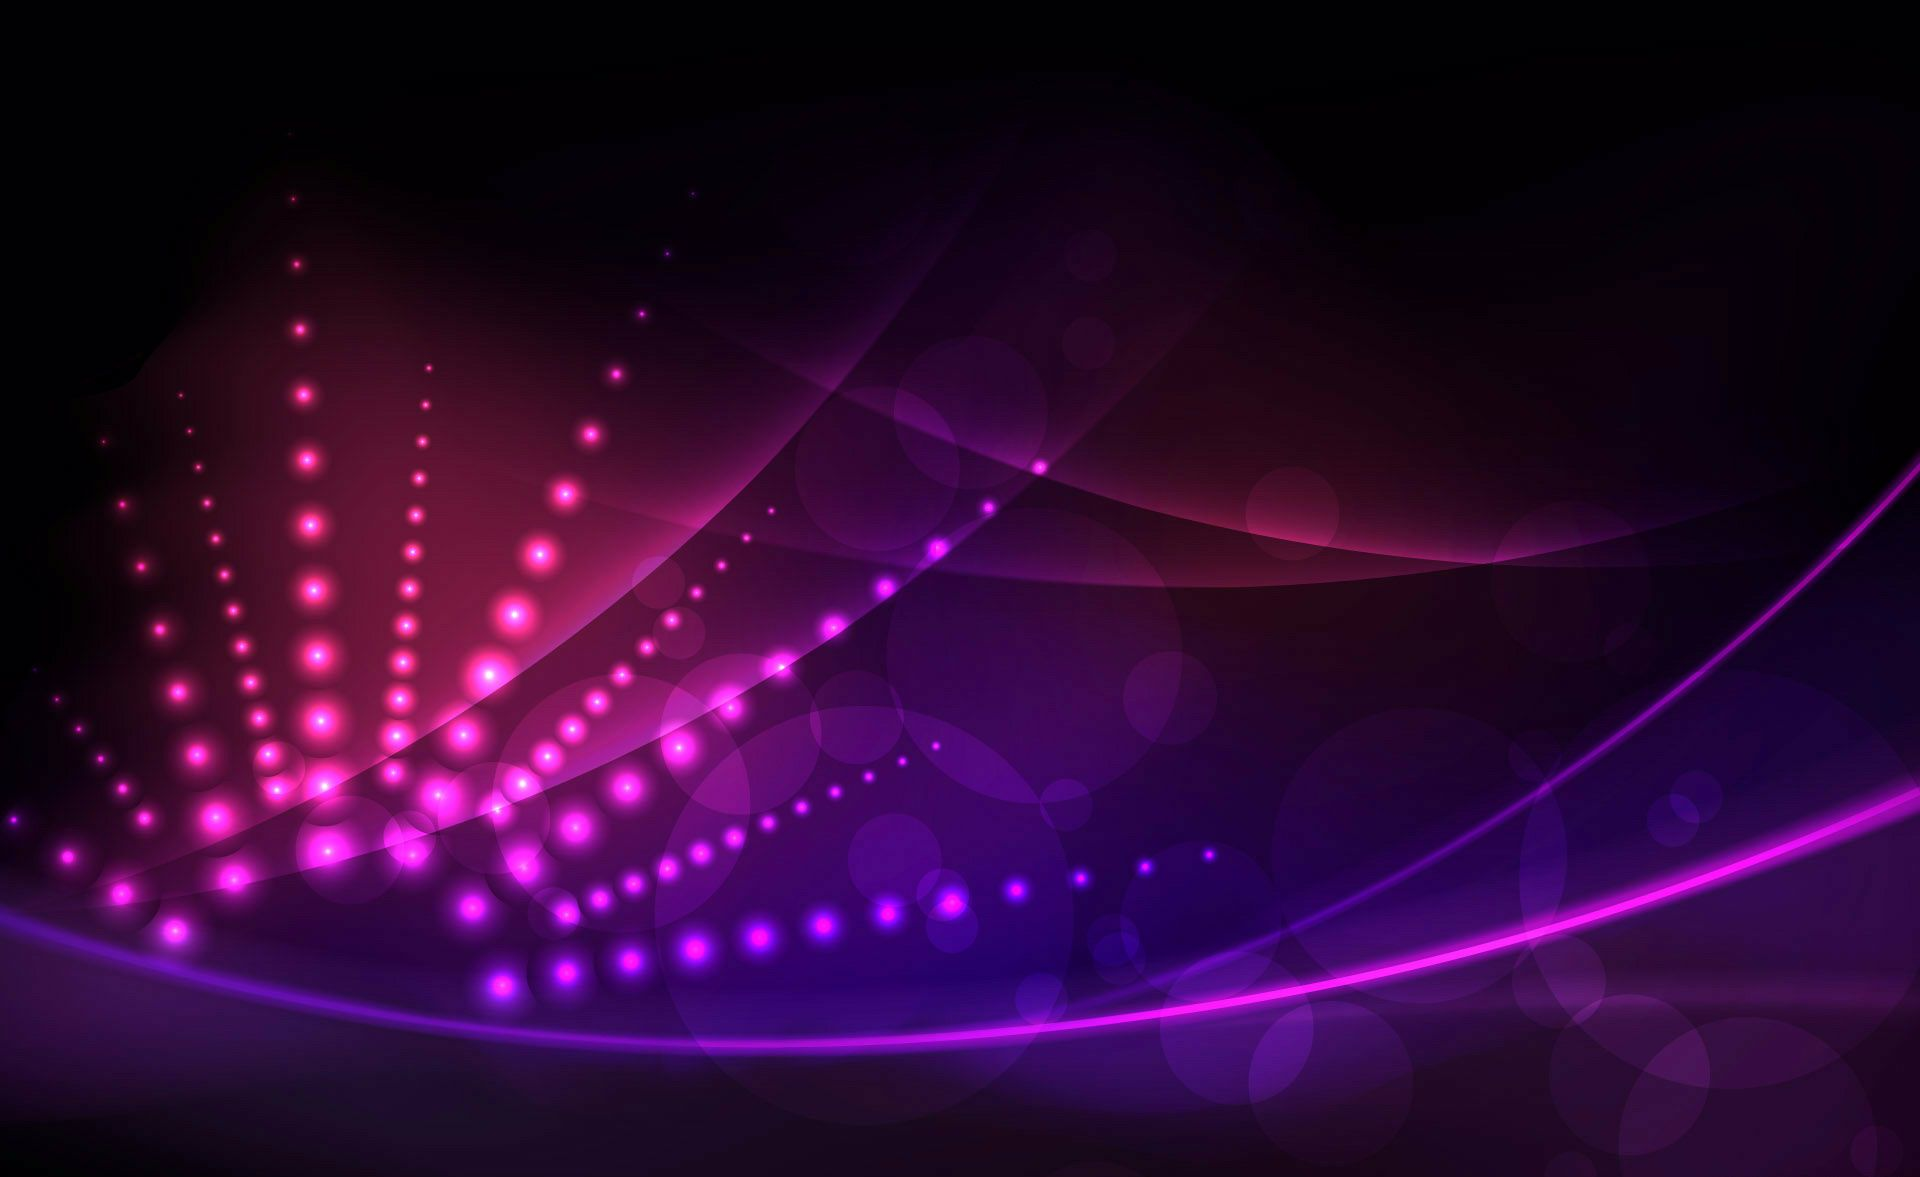 Abstract Beautiful Lines Black Background Circles Lights Pink